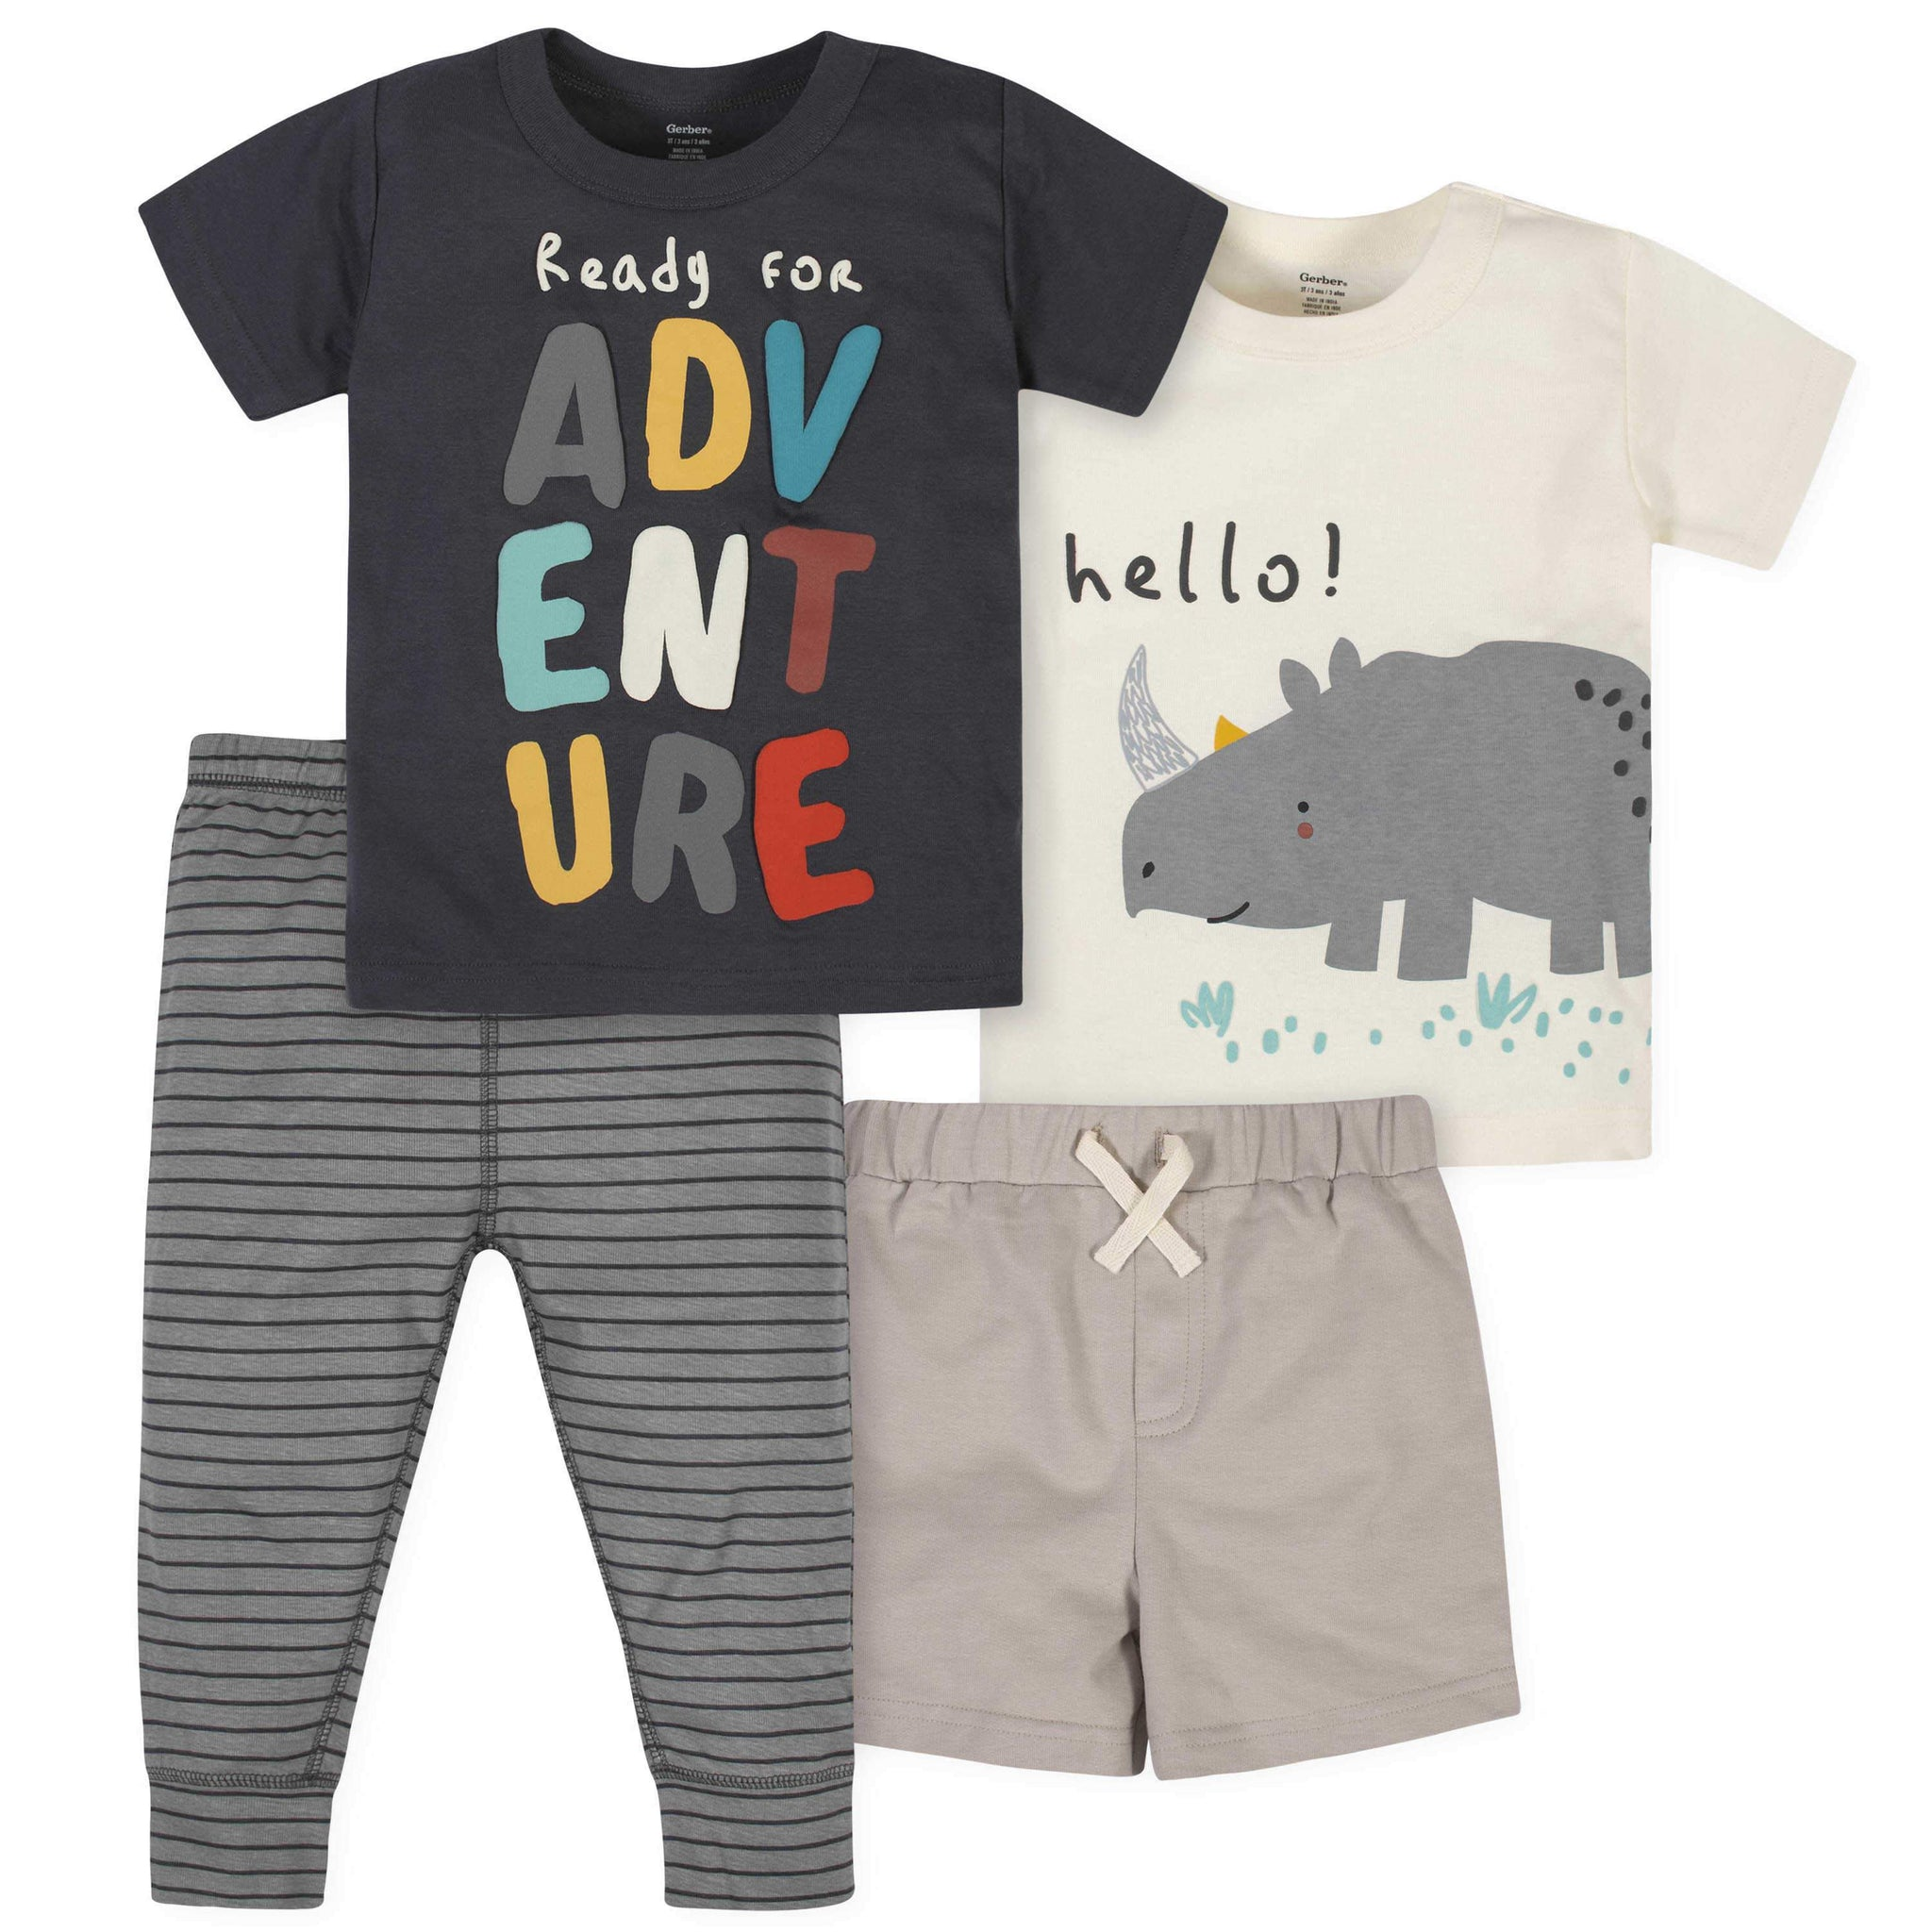 4-Piece Toddler Boys Rhino Short, Shirts, and Active Pant Set